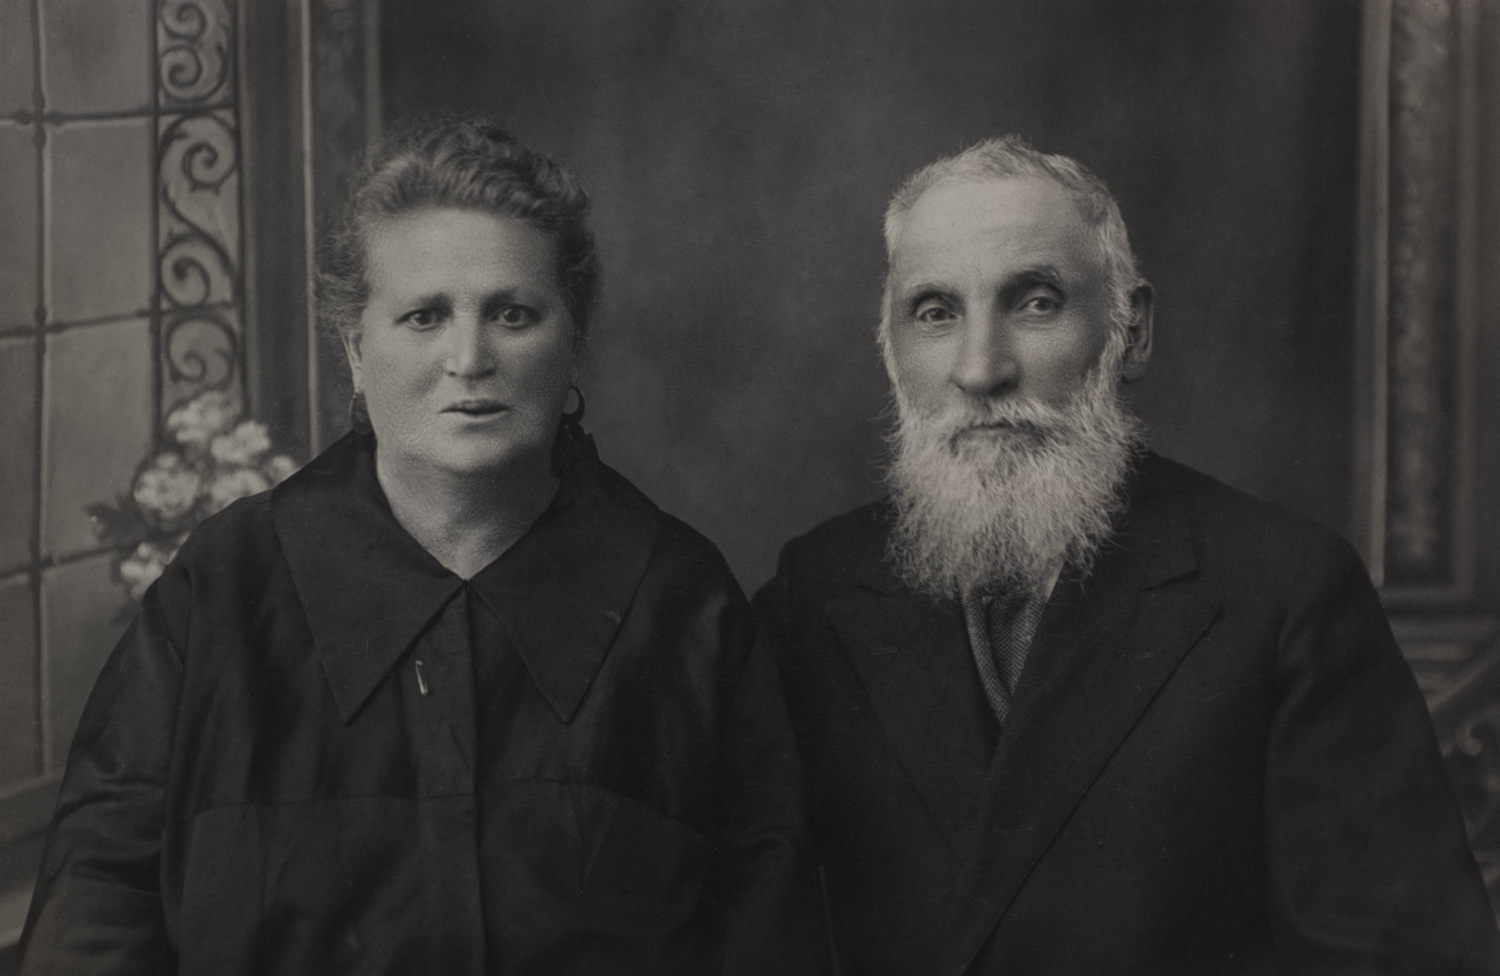 Grunya and Zoruch Kagan - Keidan, 1929